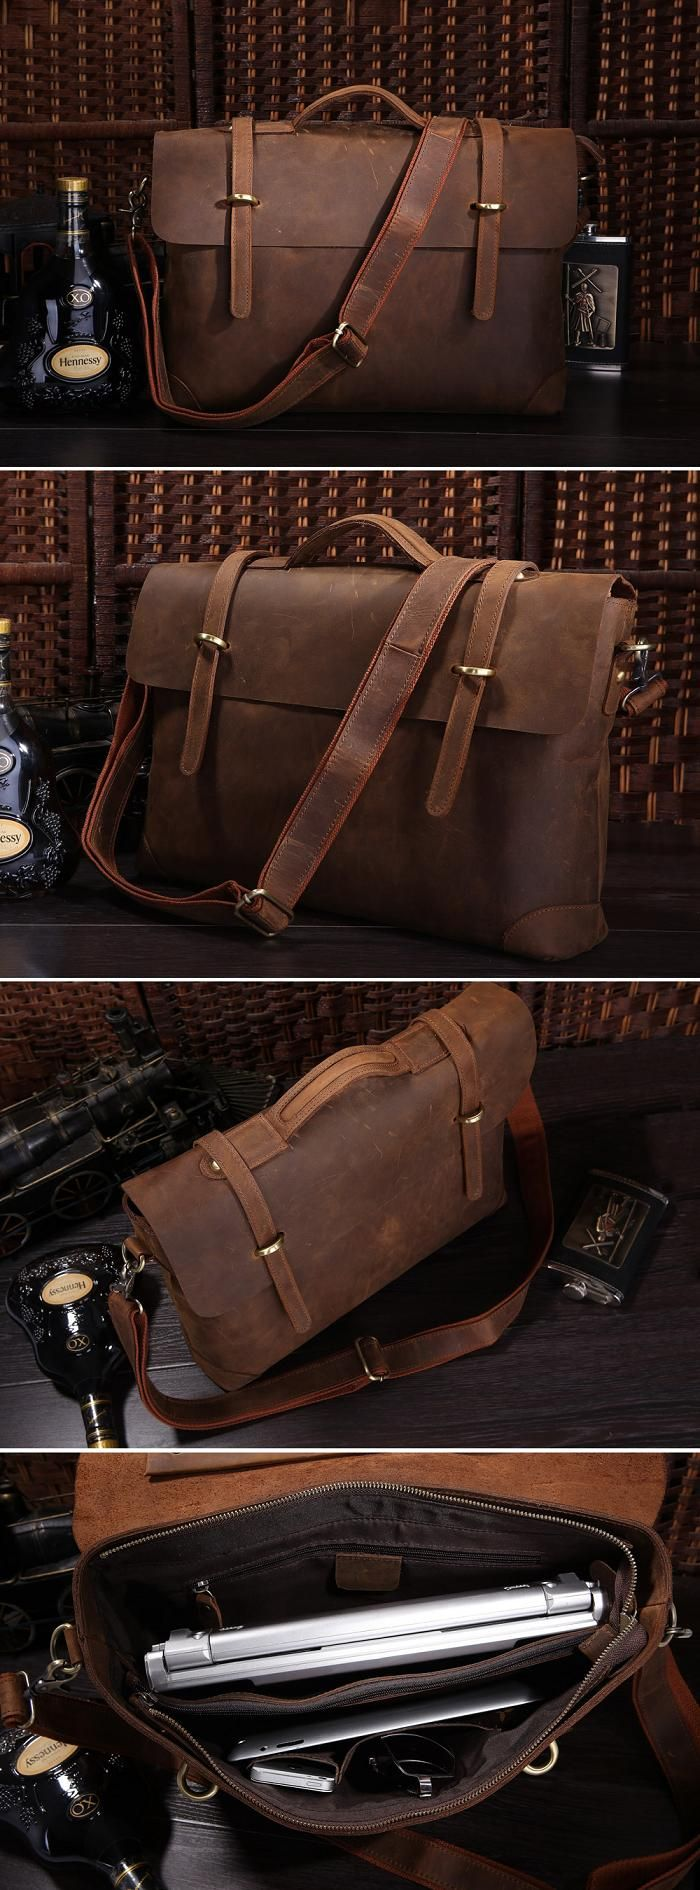 "Handmade Vintage Leather Briefcase / Leather Messenger Bag / 13"" 15"" MacBook 13"" 14"" Laptop Bag. Men Women"